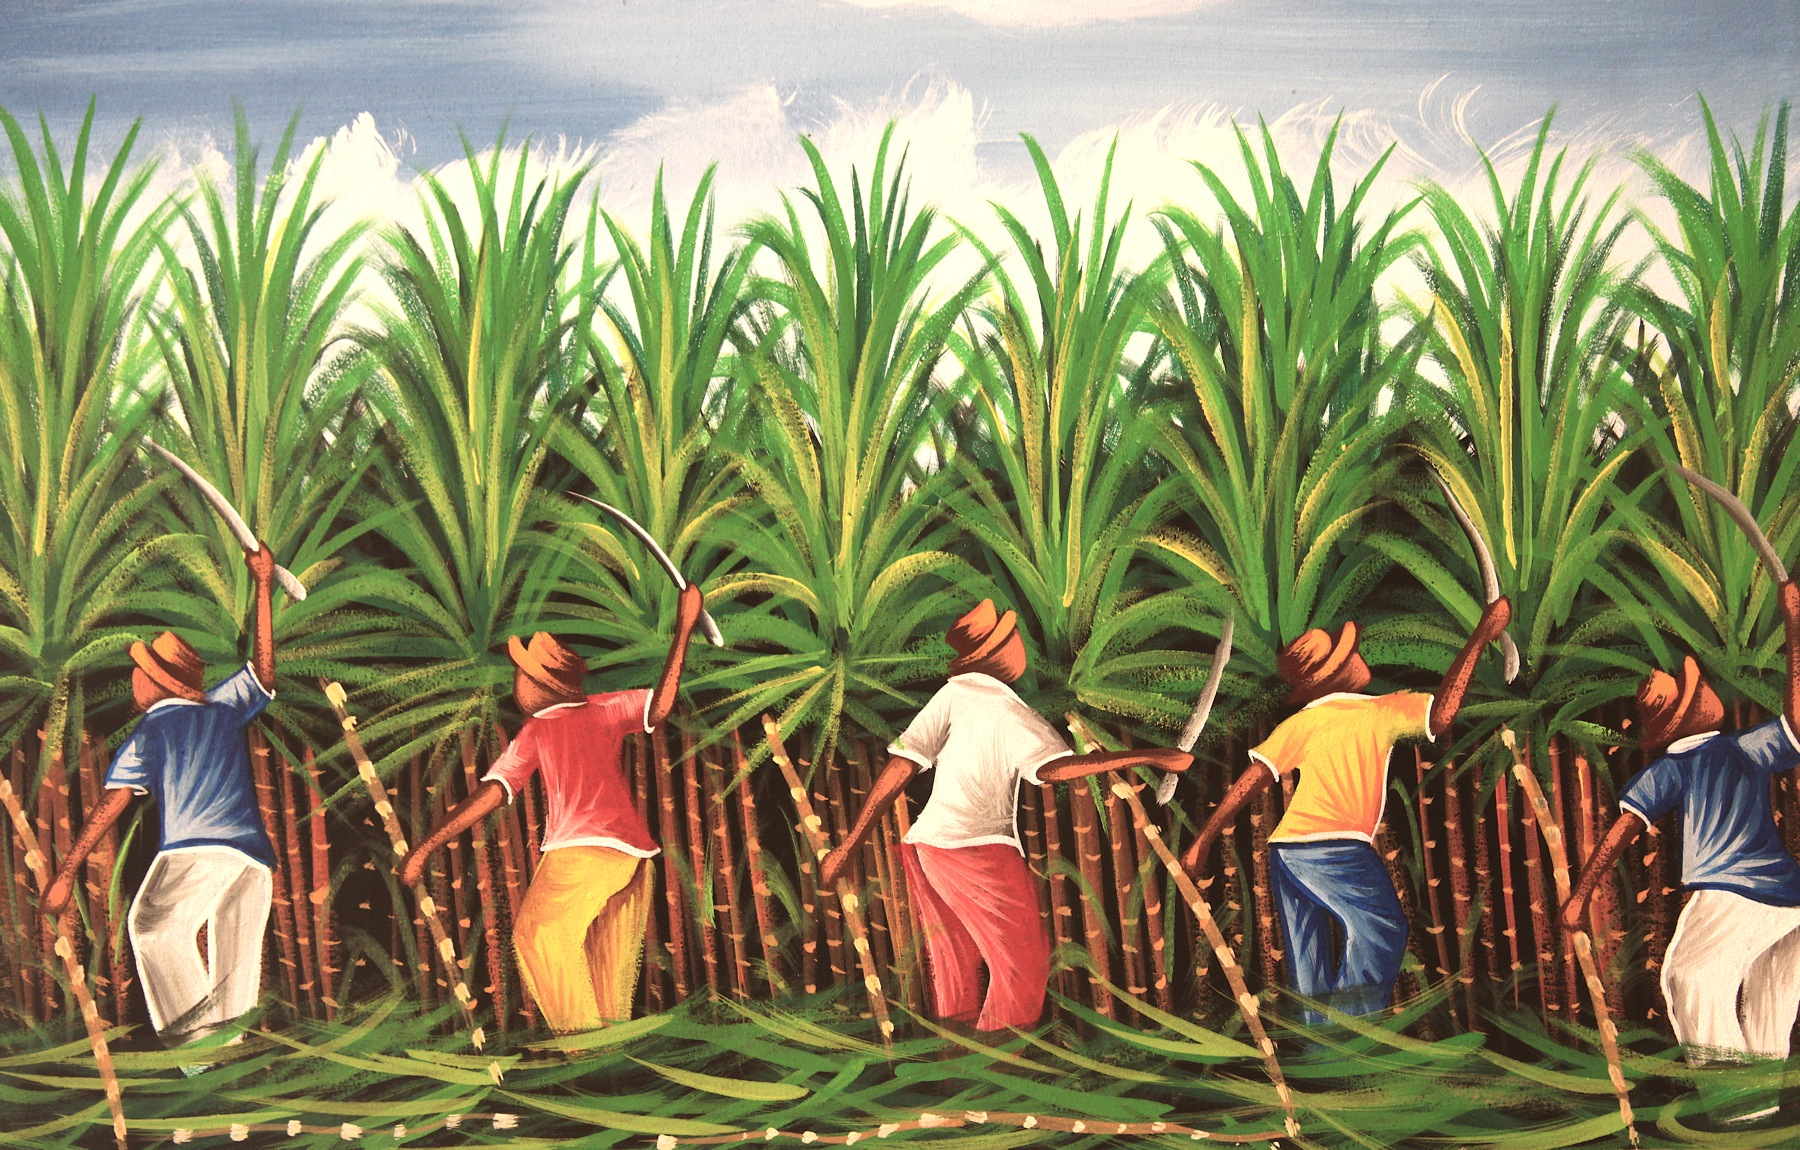 effects of sugar revolution in the caribbean Two-thirds of the slaves worked on sugar plantations in the caribbean some of which turned out to be britain's industrial revolution in the late 18 th and early 19 th centuries pirates of the caribbean: sugar & slavery.